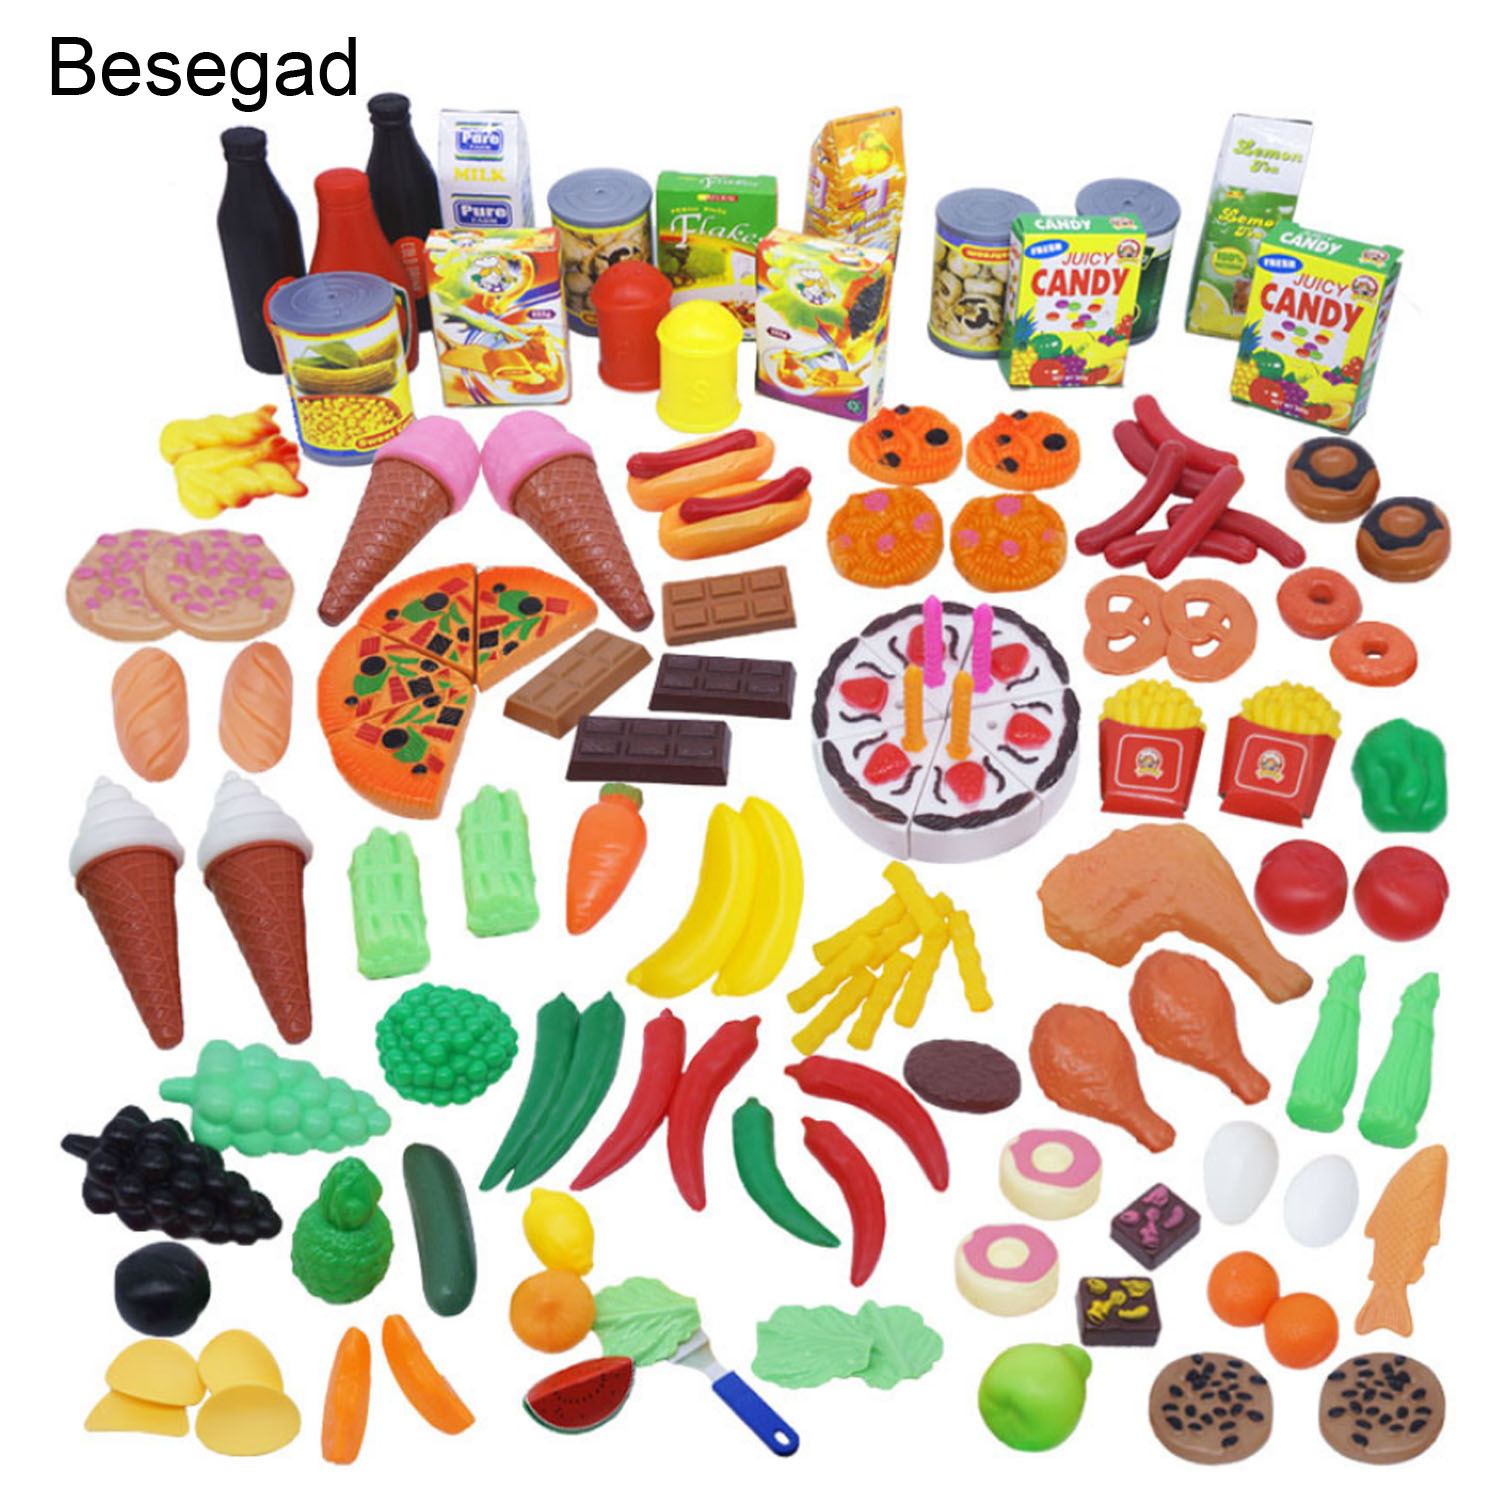 Besegad 130pcs Funny Kitchen Pretend Play Toys Including Fruits Vegetable Desserts For Market Educational Pretend Role Play Toys